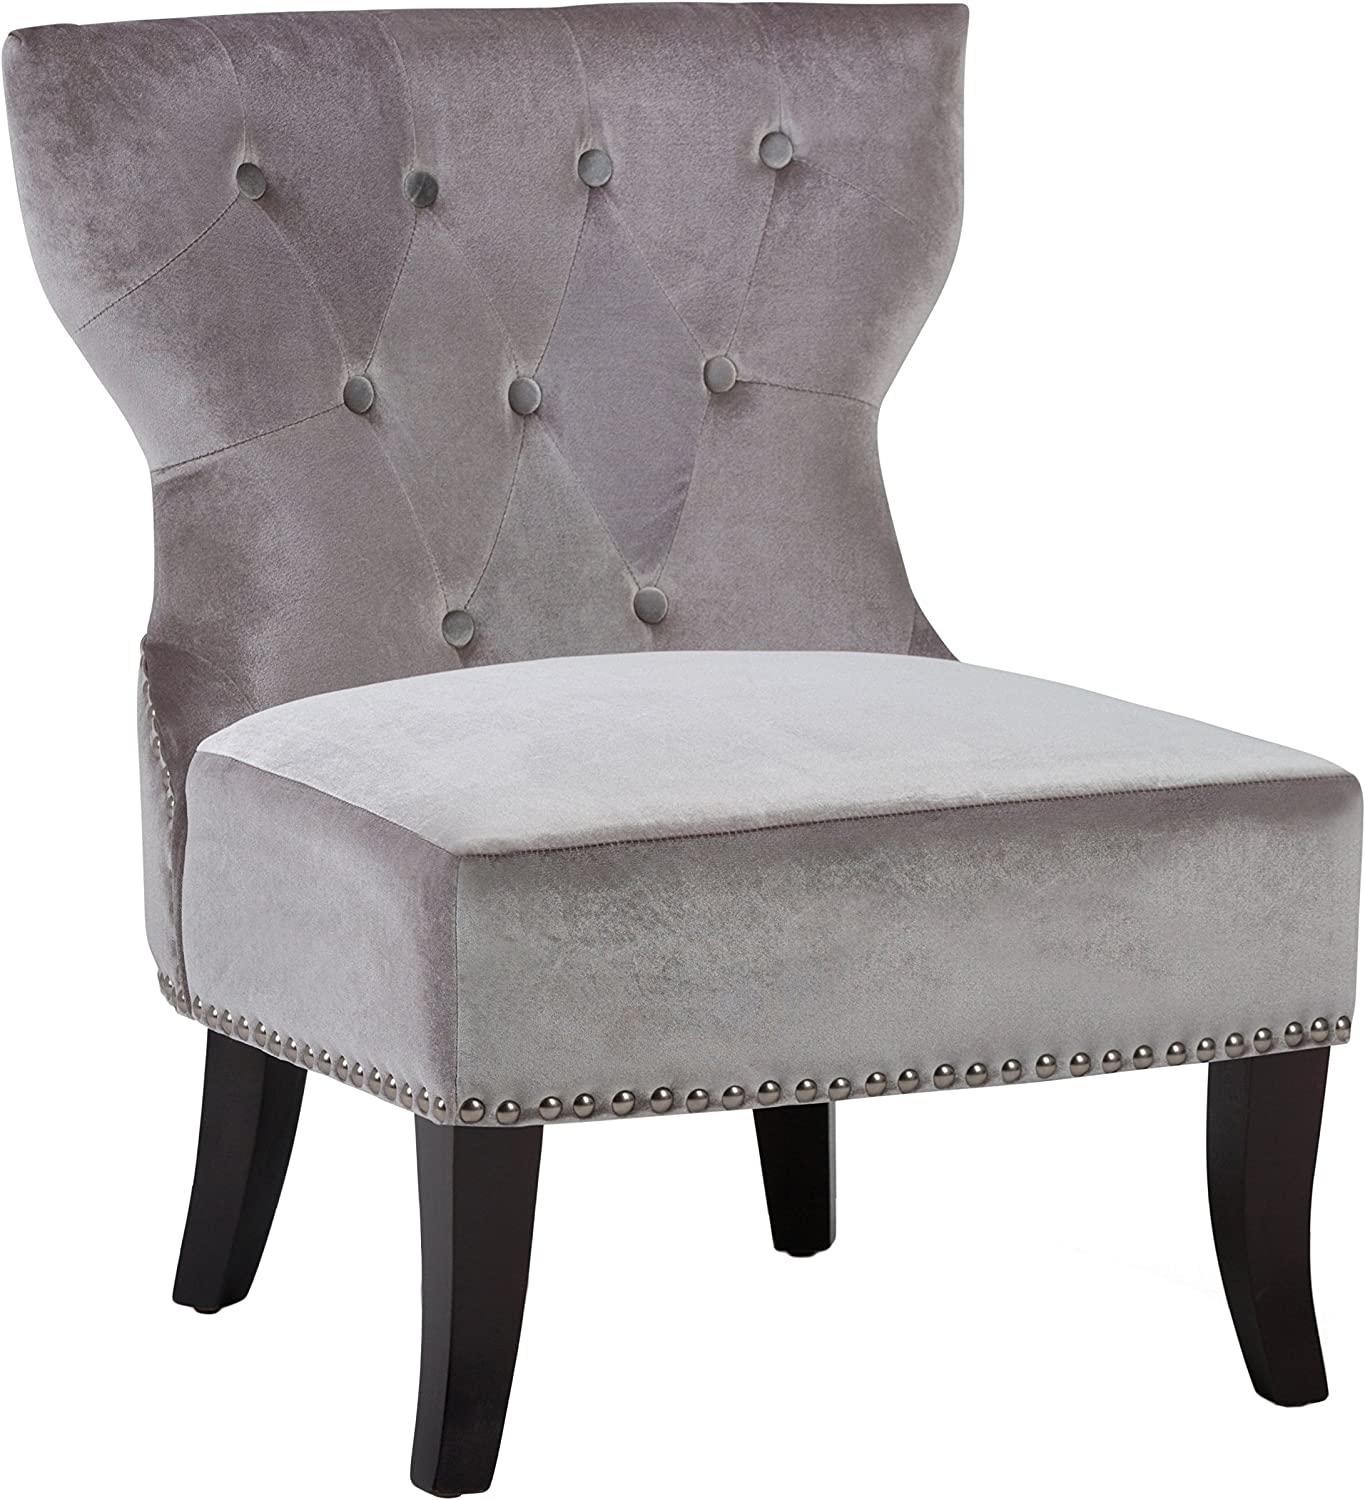 SIMPLIHOME Kitchener 28 inch Wide Traditional Accent Slipper Chair in Grey Velvet